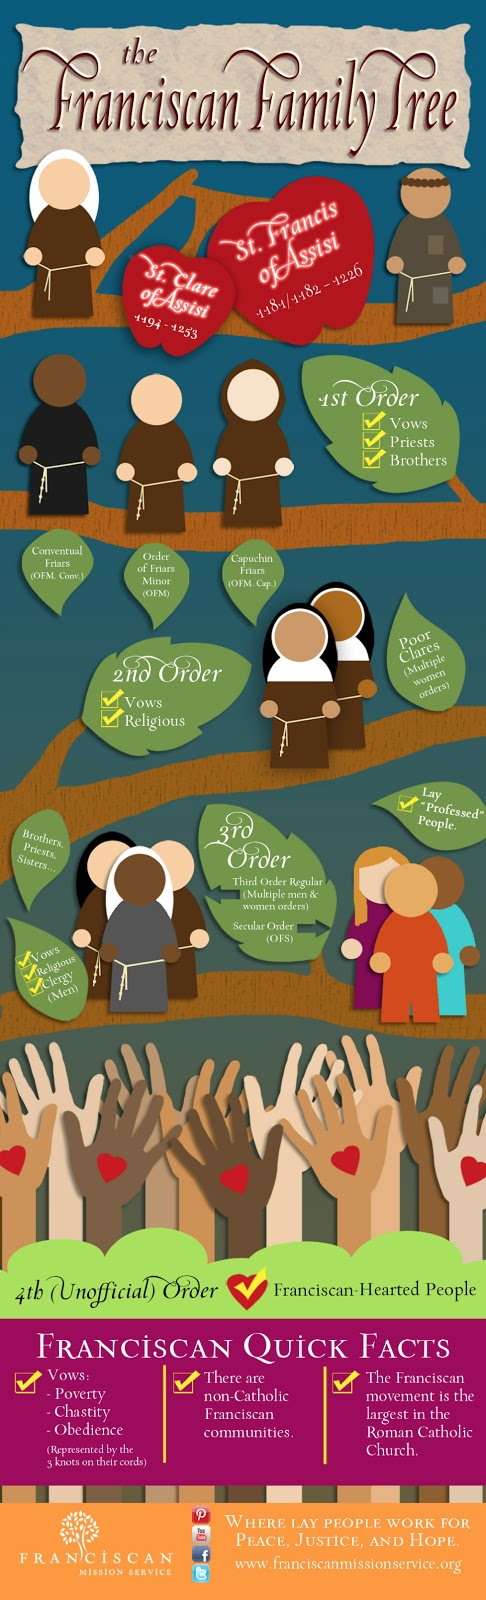 Franciscan Family Tree